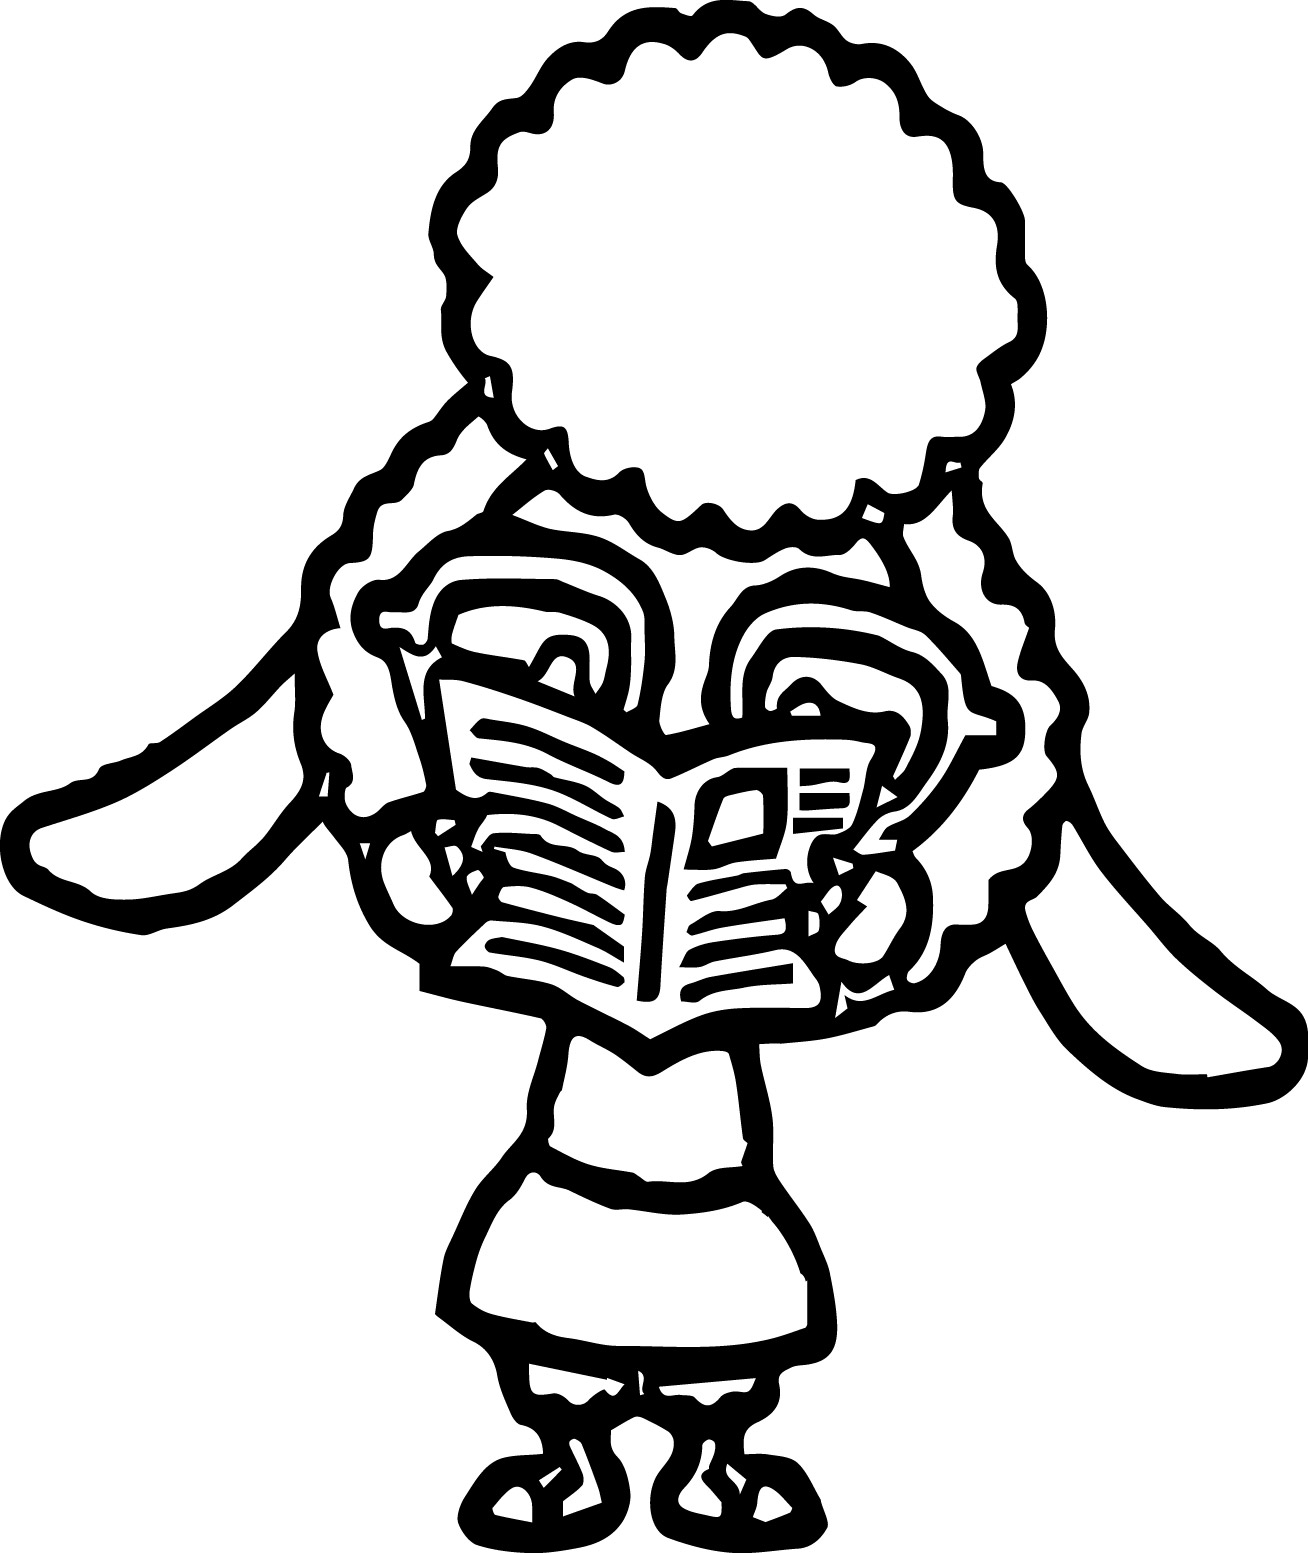 Sheep zootopia read a newspaper coloring page